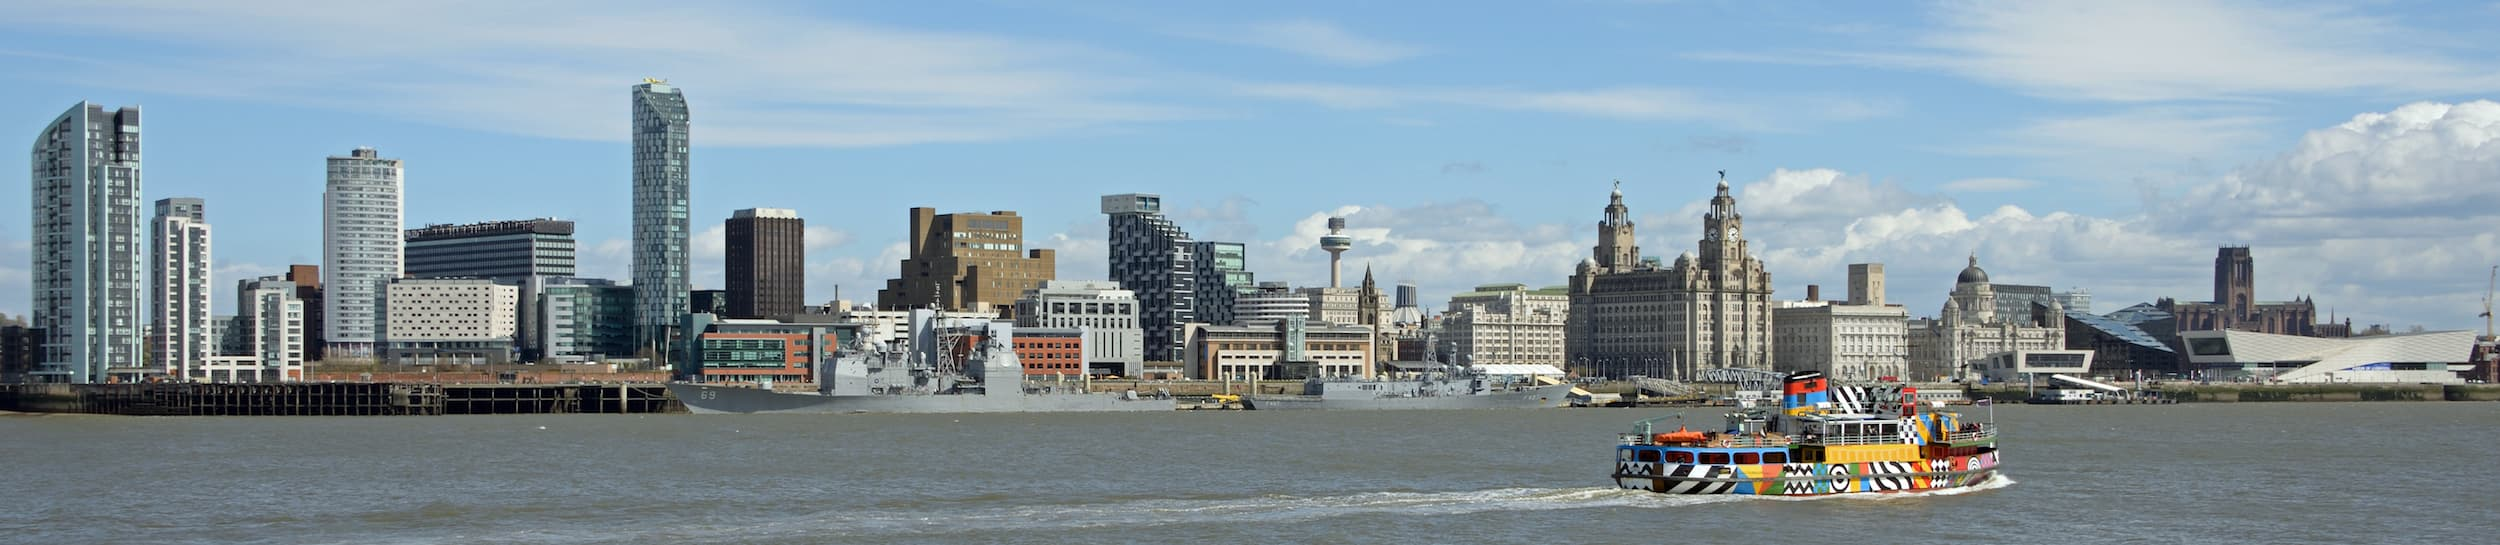 Skyline of Liverpool